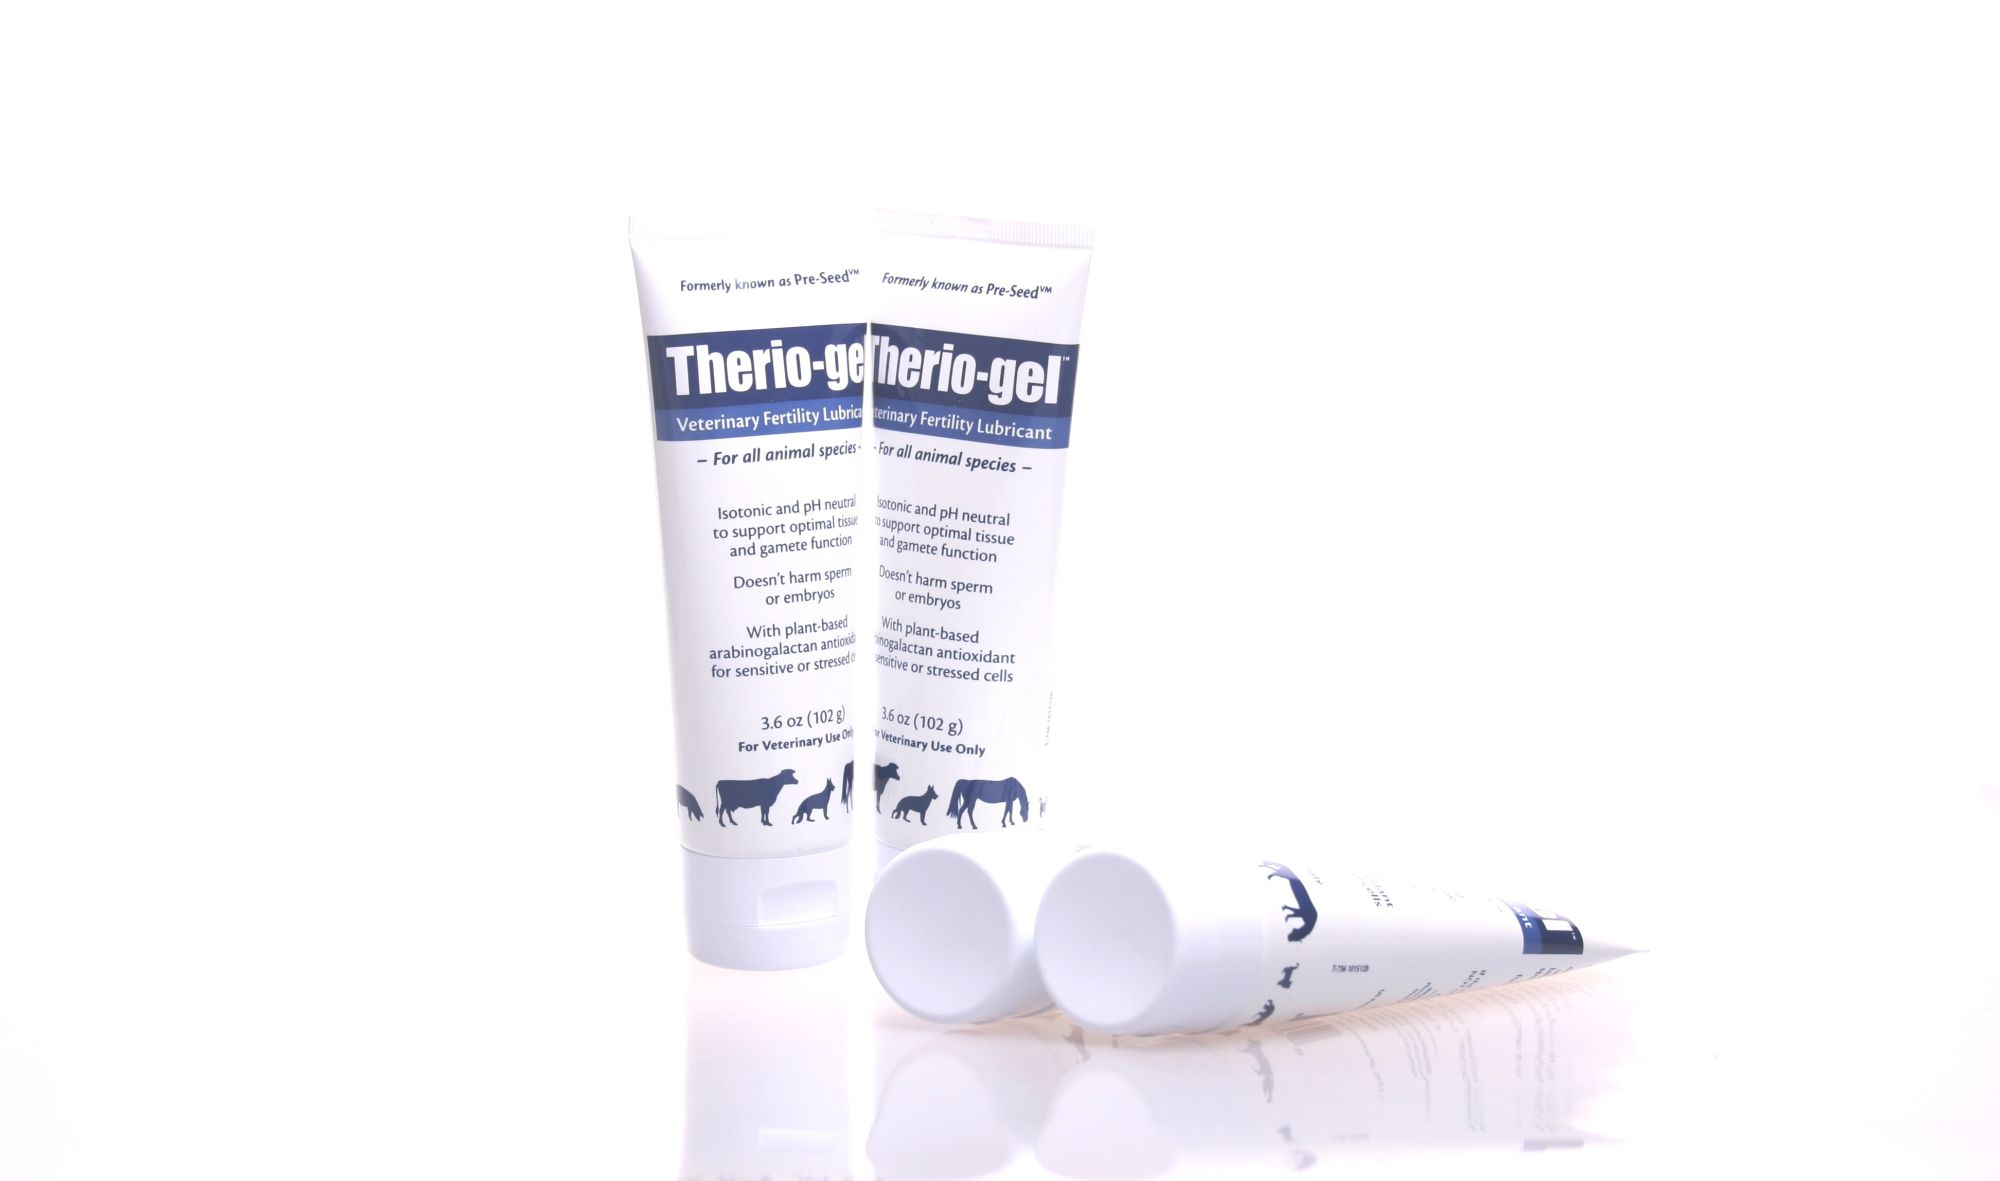 therio gel non spermicidal lube